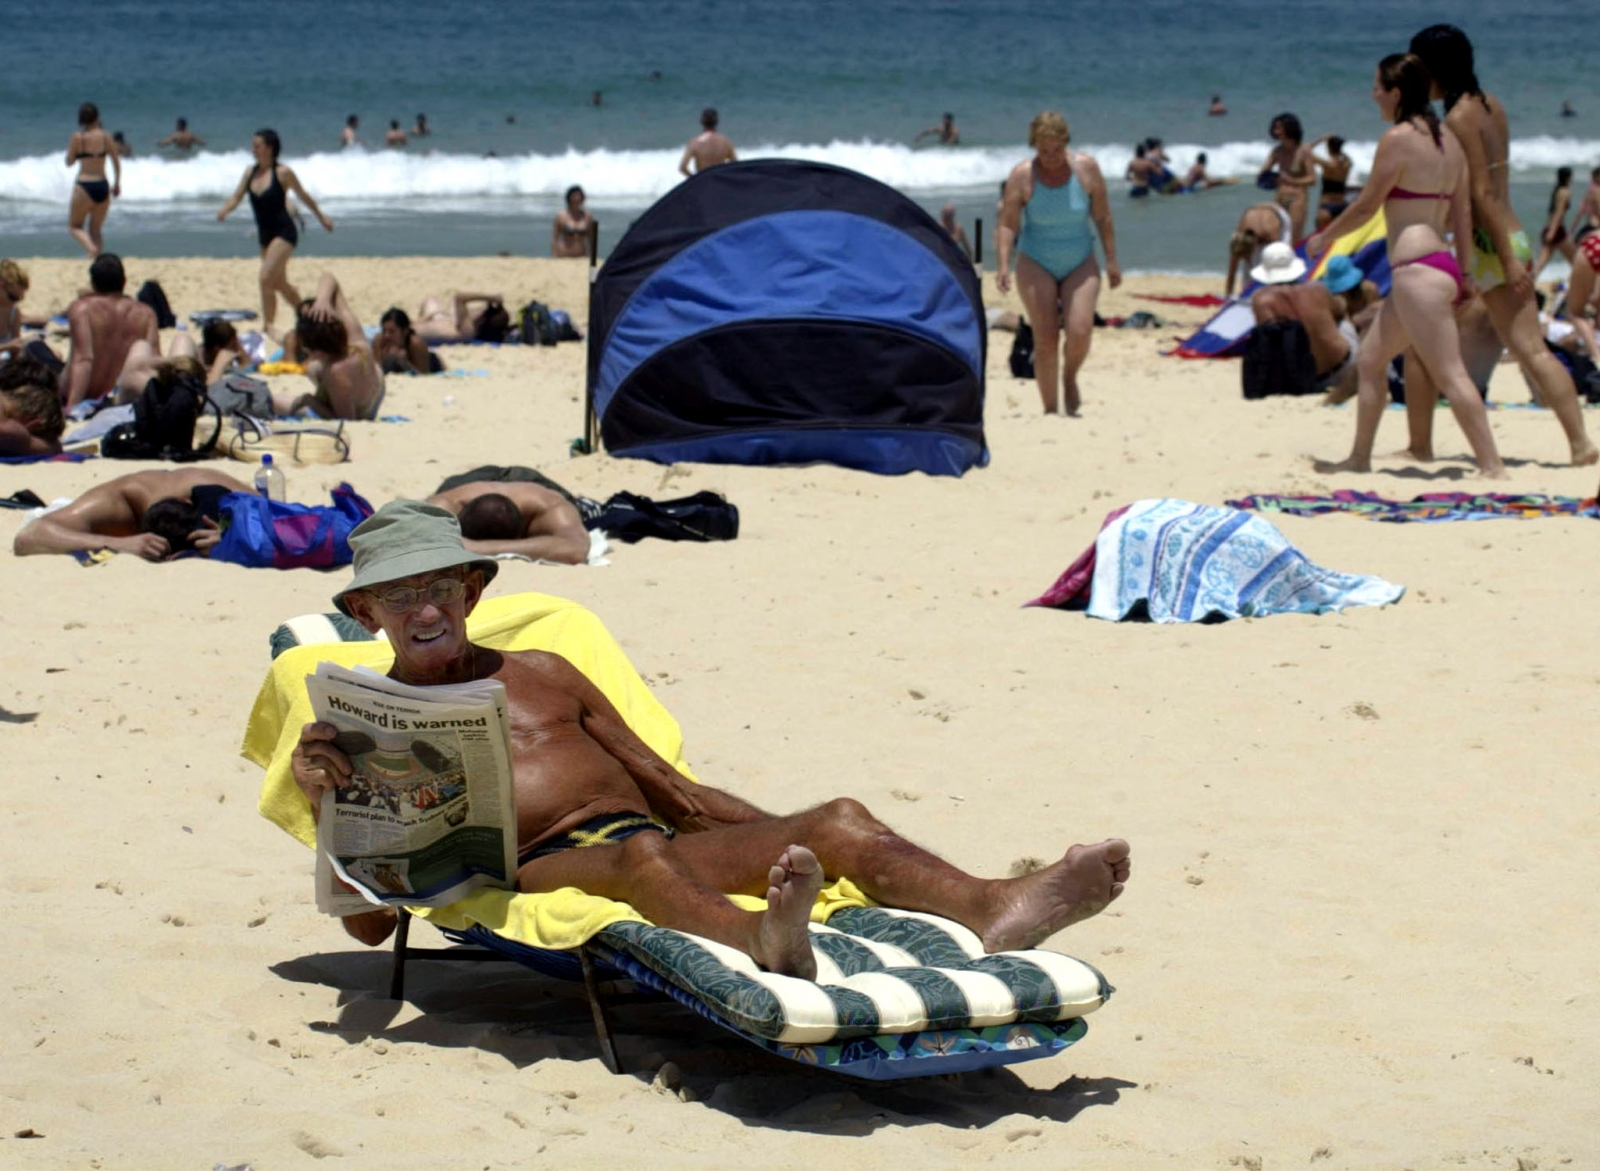 Elderly man sunbathing